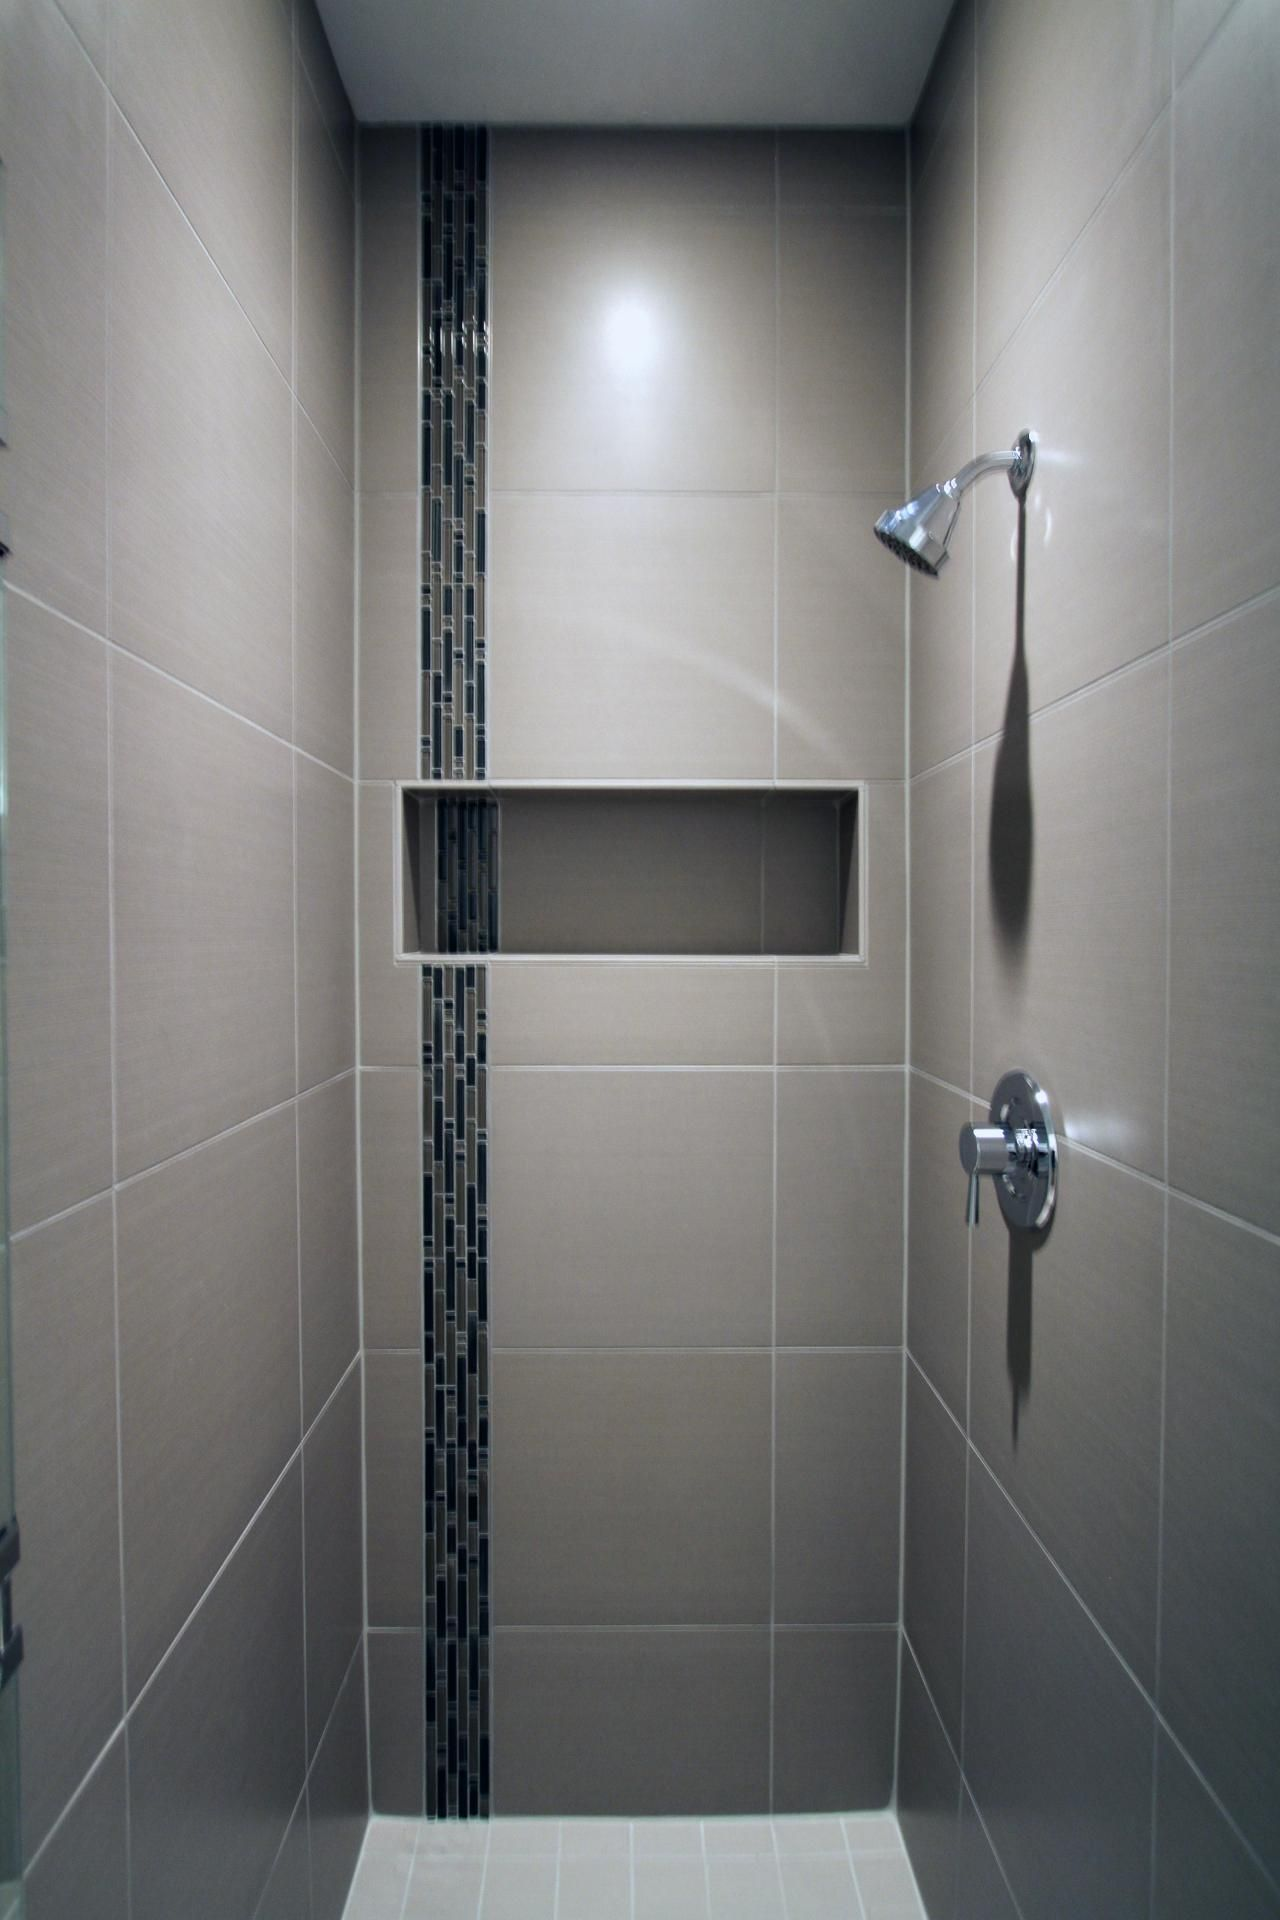 Shower Accent Tile The Porcelain Tile Of This Sleek Shower Surrounds A Glass